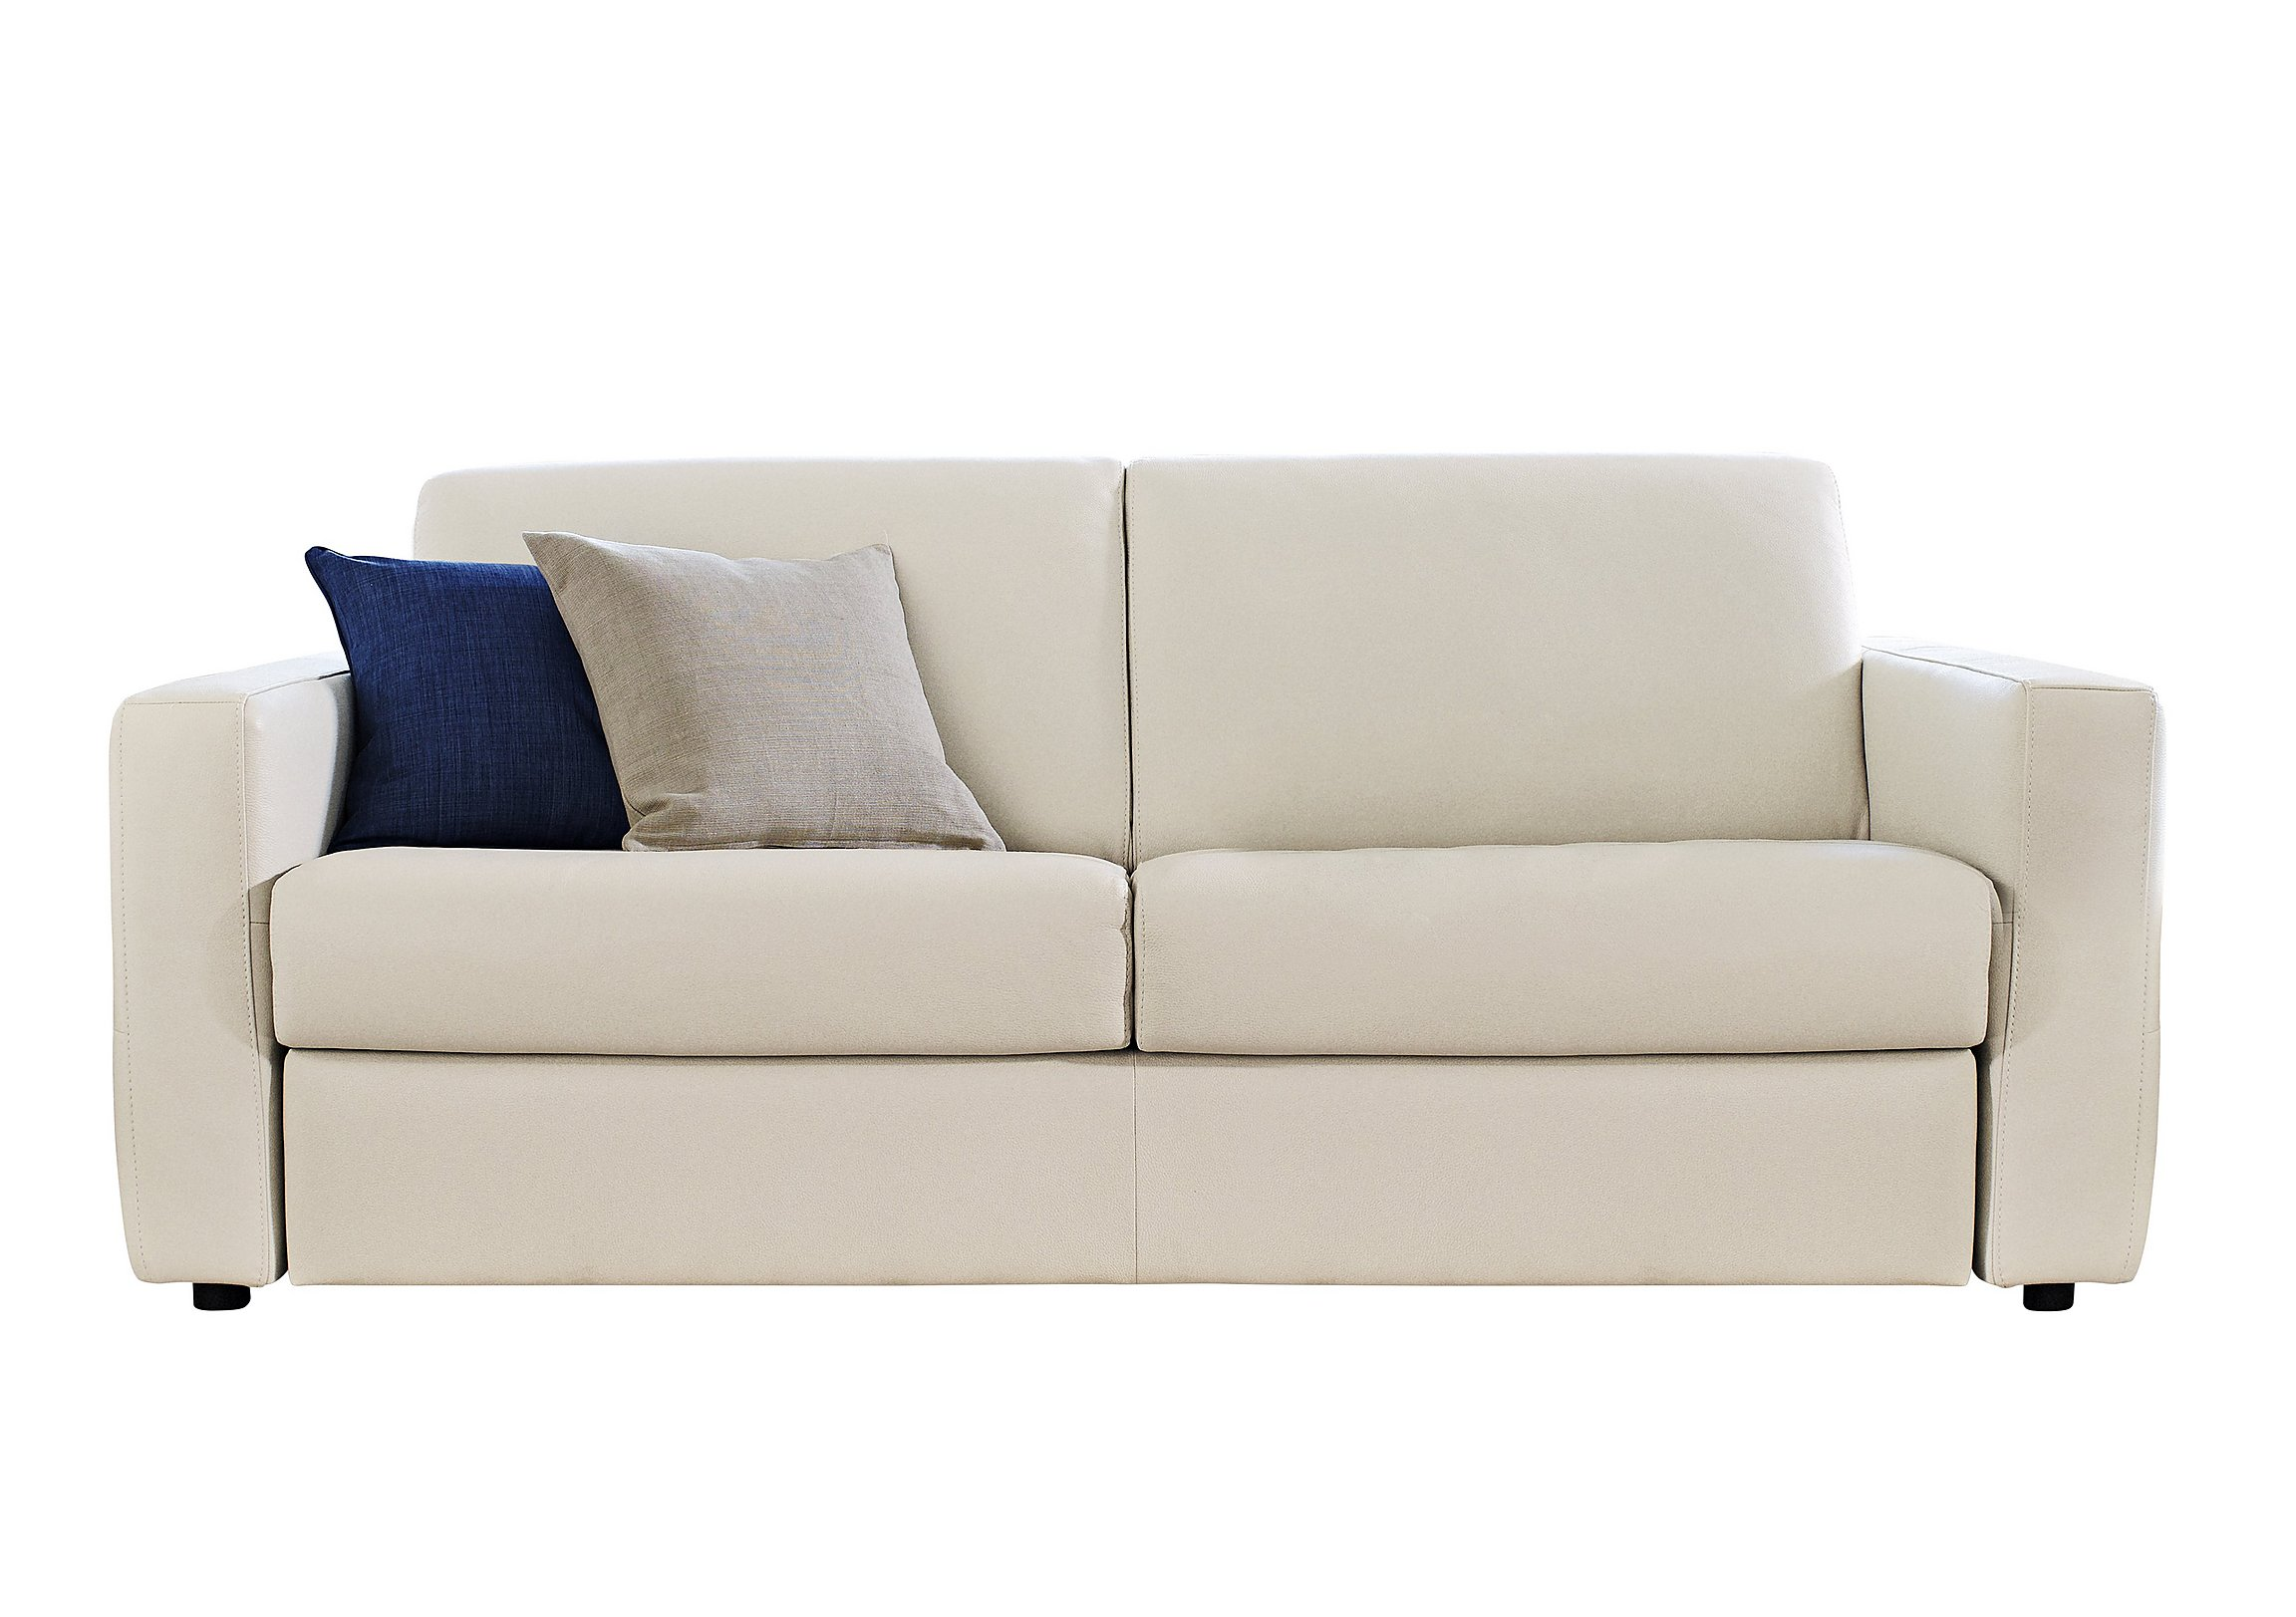 Furniture Village Natuzzi Sofa Bed Refil Sofa